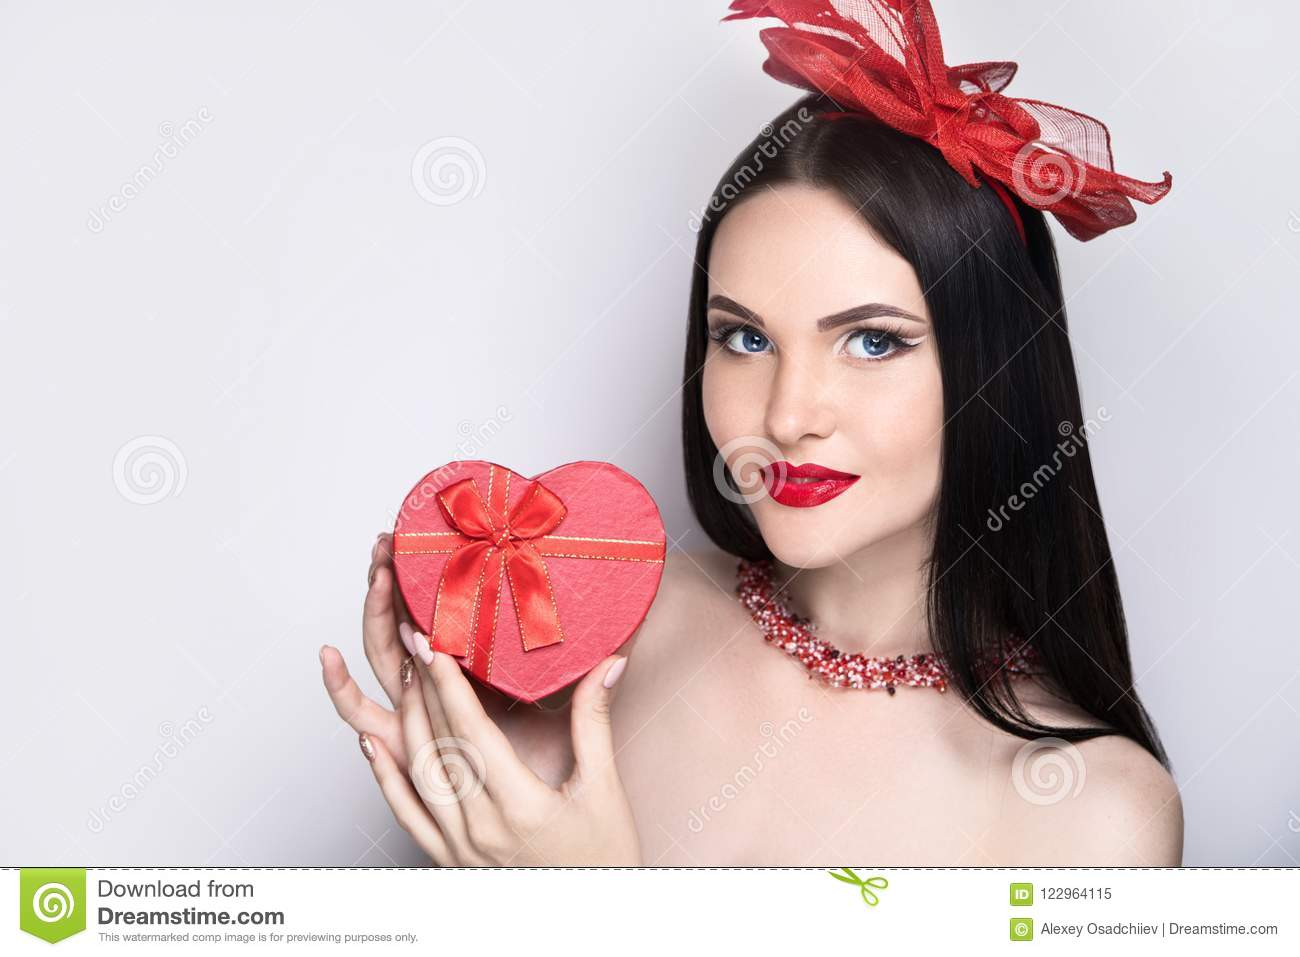 Happy Valentine`s Day card. Loving beautiful girl. Woman in a red hat  holding small heart box. Background horizontal banner ded5044bc4c0